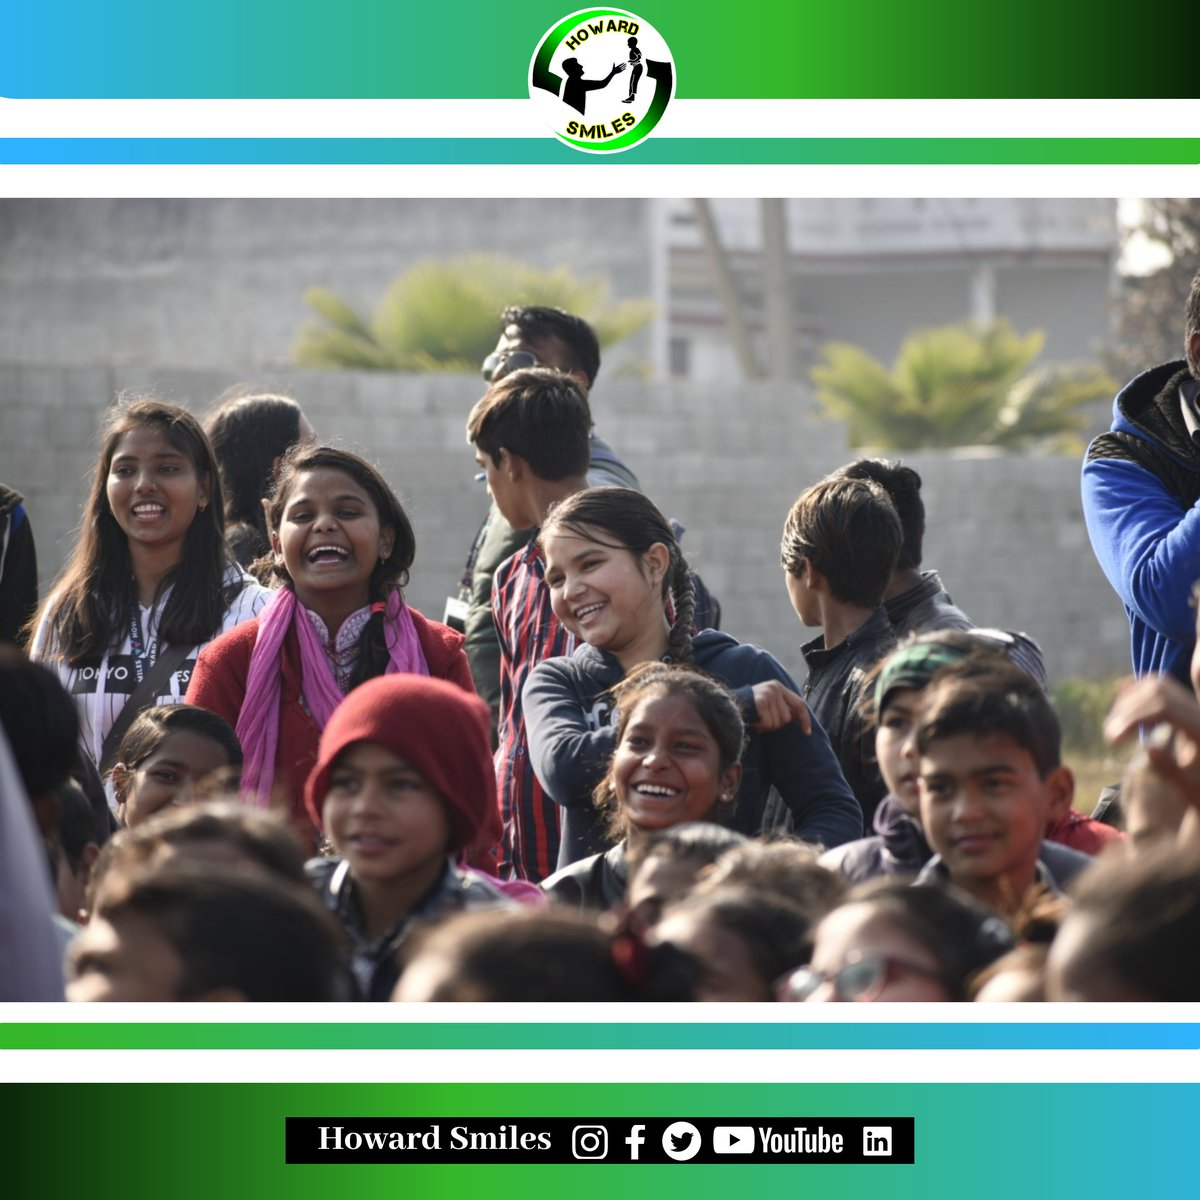 Happy faces lights up all the surroundings even in the dark times and this joy immensely inspires us from inside🌸  #howardsmiles #lpu #smile #studentorganization #socialwork